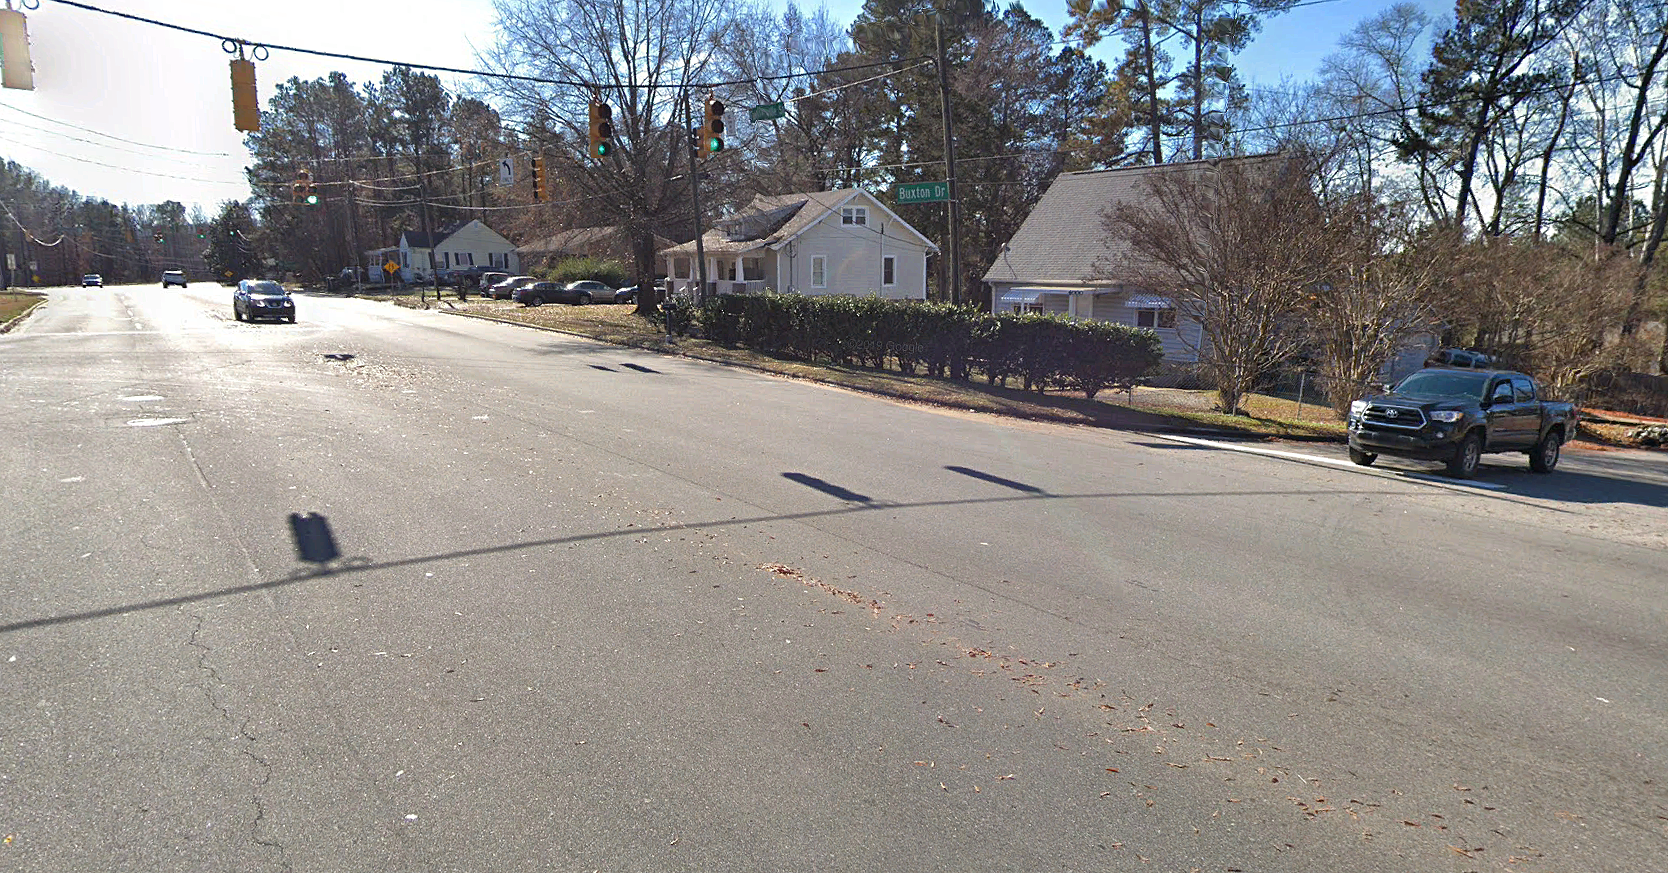 Level B SUE services at Fayetteville Road and Buxton Drive Intersection, Durham, NC